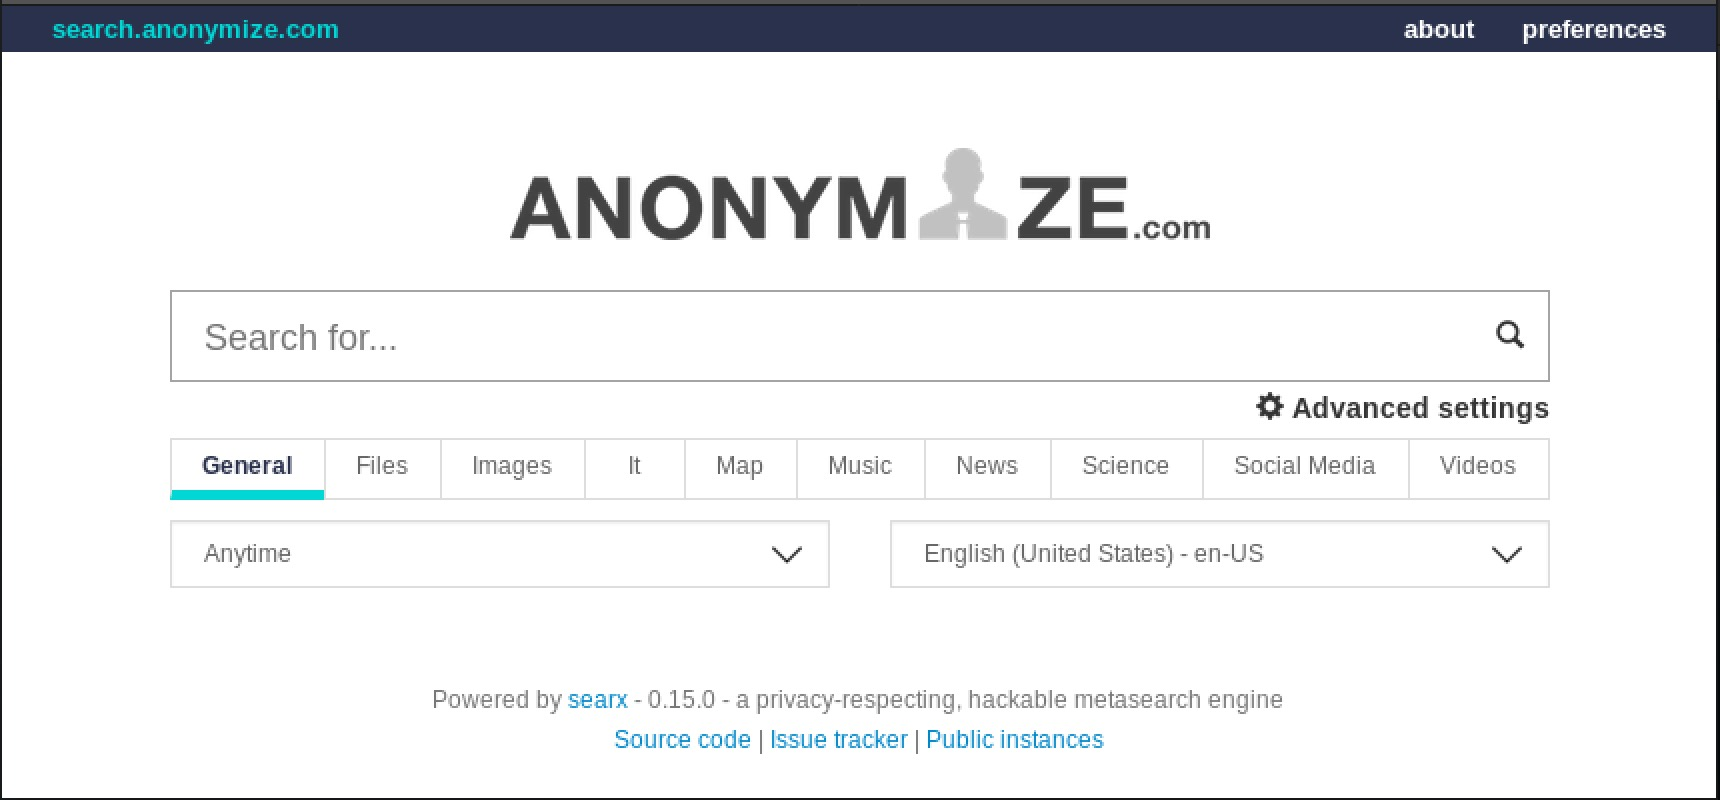 image of anonymize